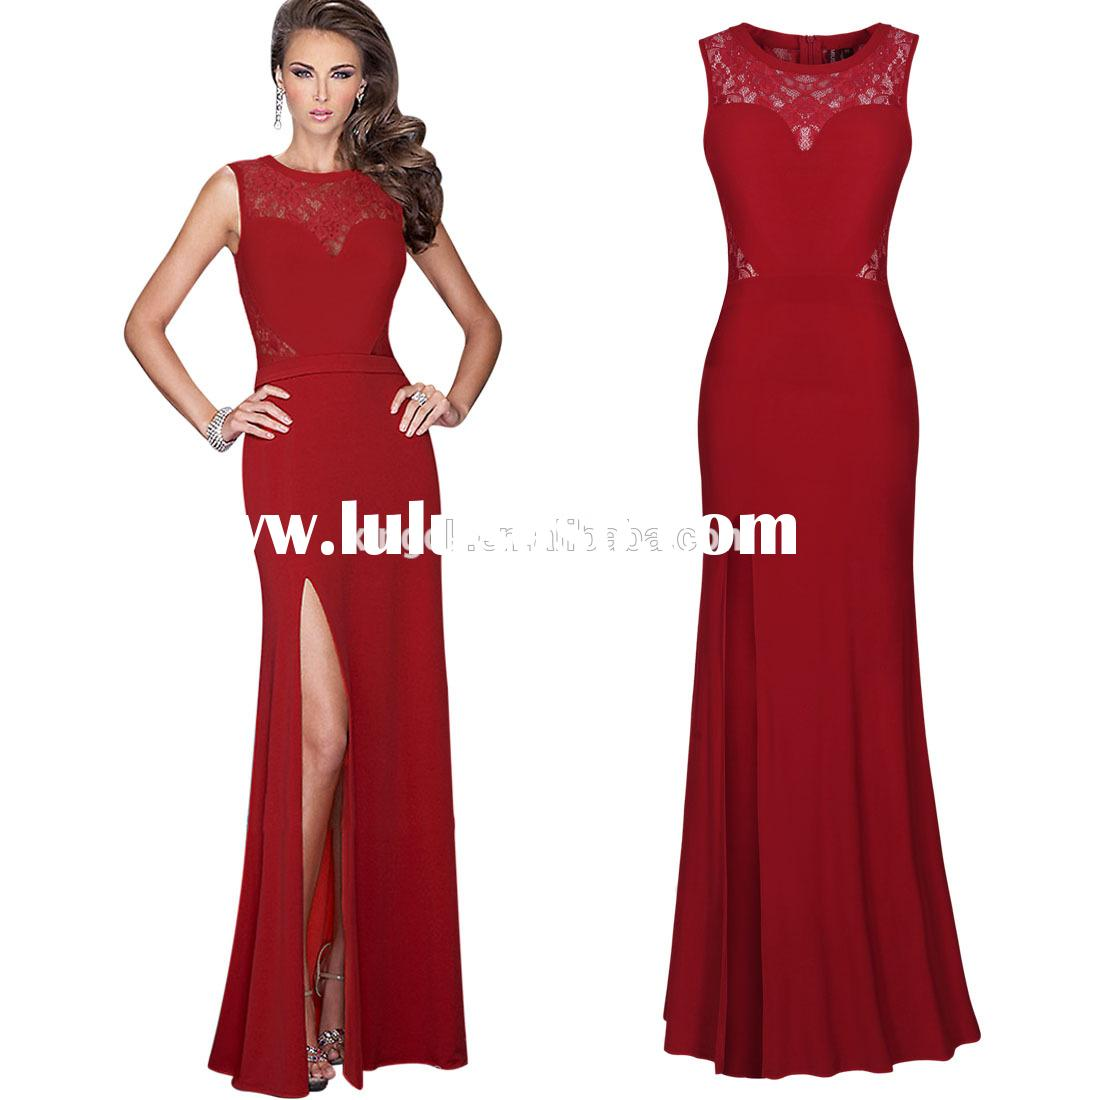 Womens lace Ball Gown Party Formal Evening Wedding red Long Full Dresses